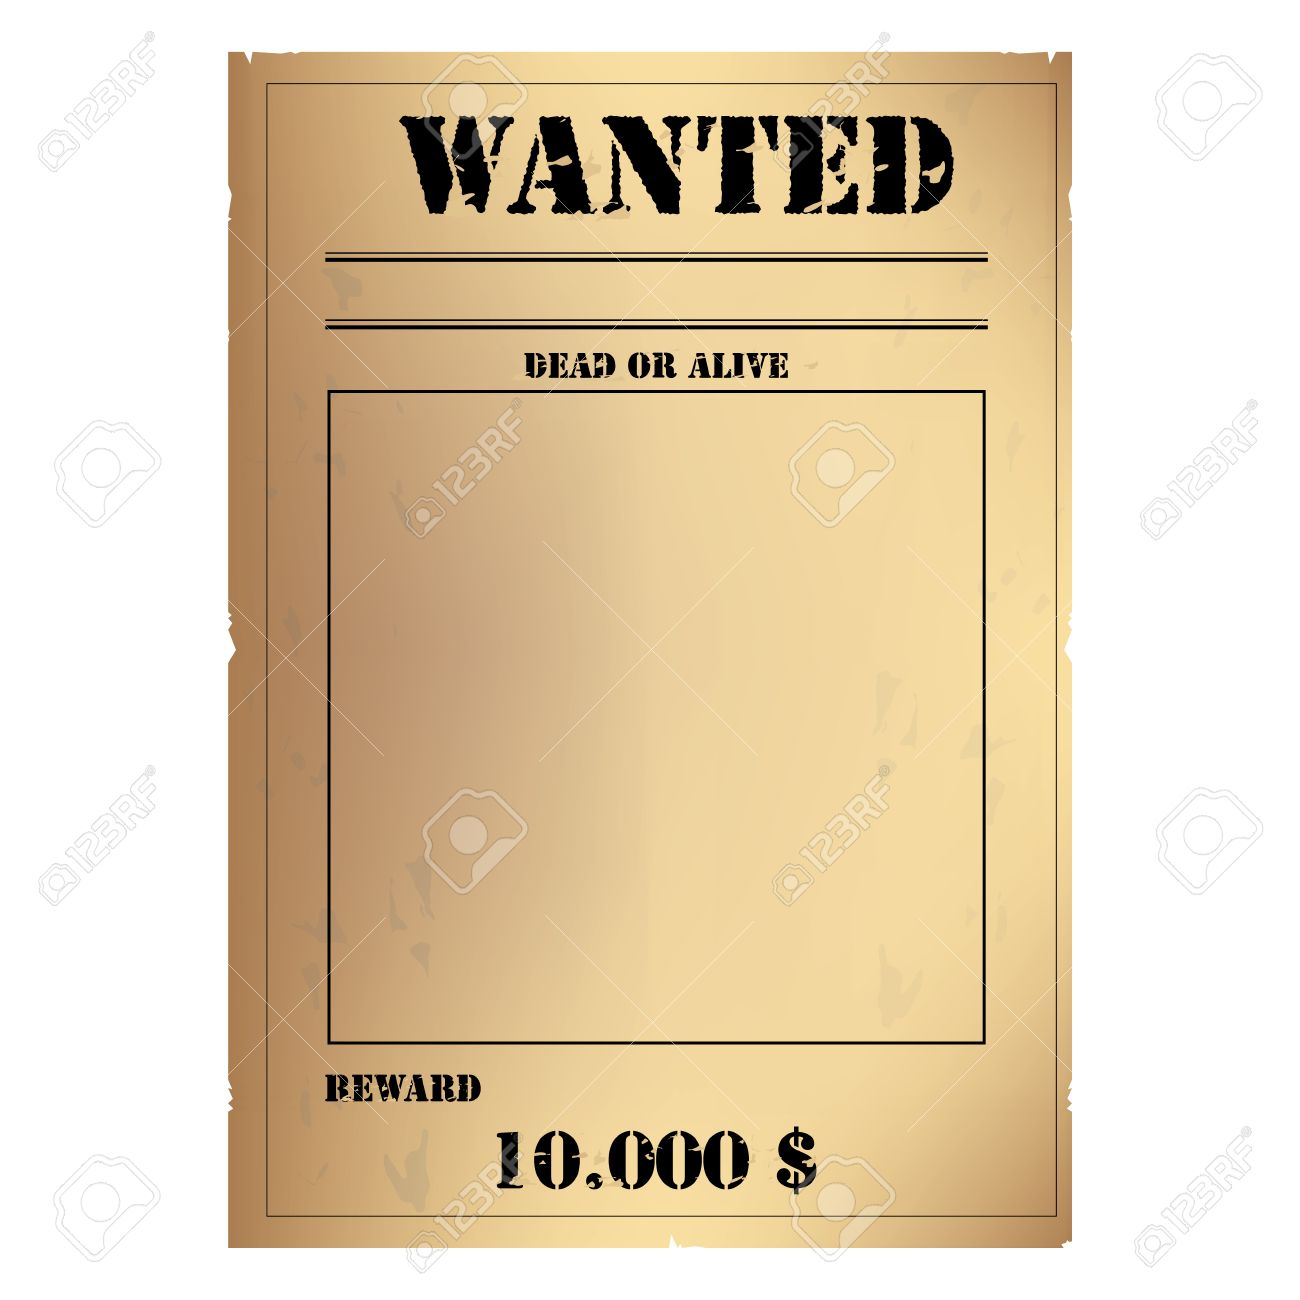 Reward Poster Template Reward Poster Template Wanted Poster – Wanted Poster Template Publisher